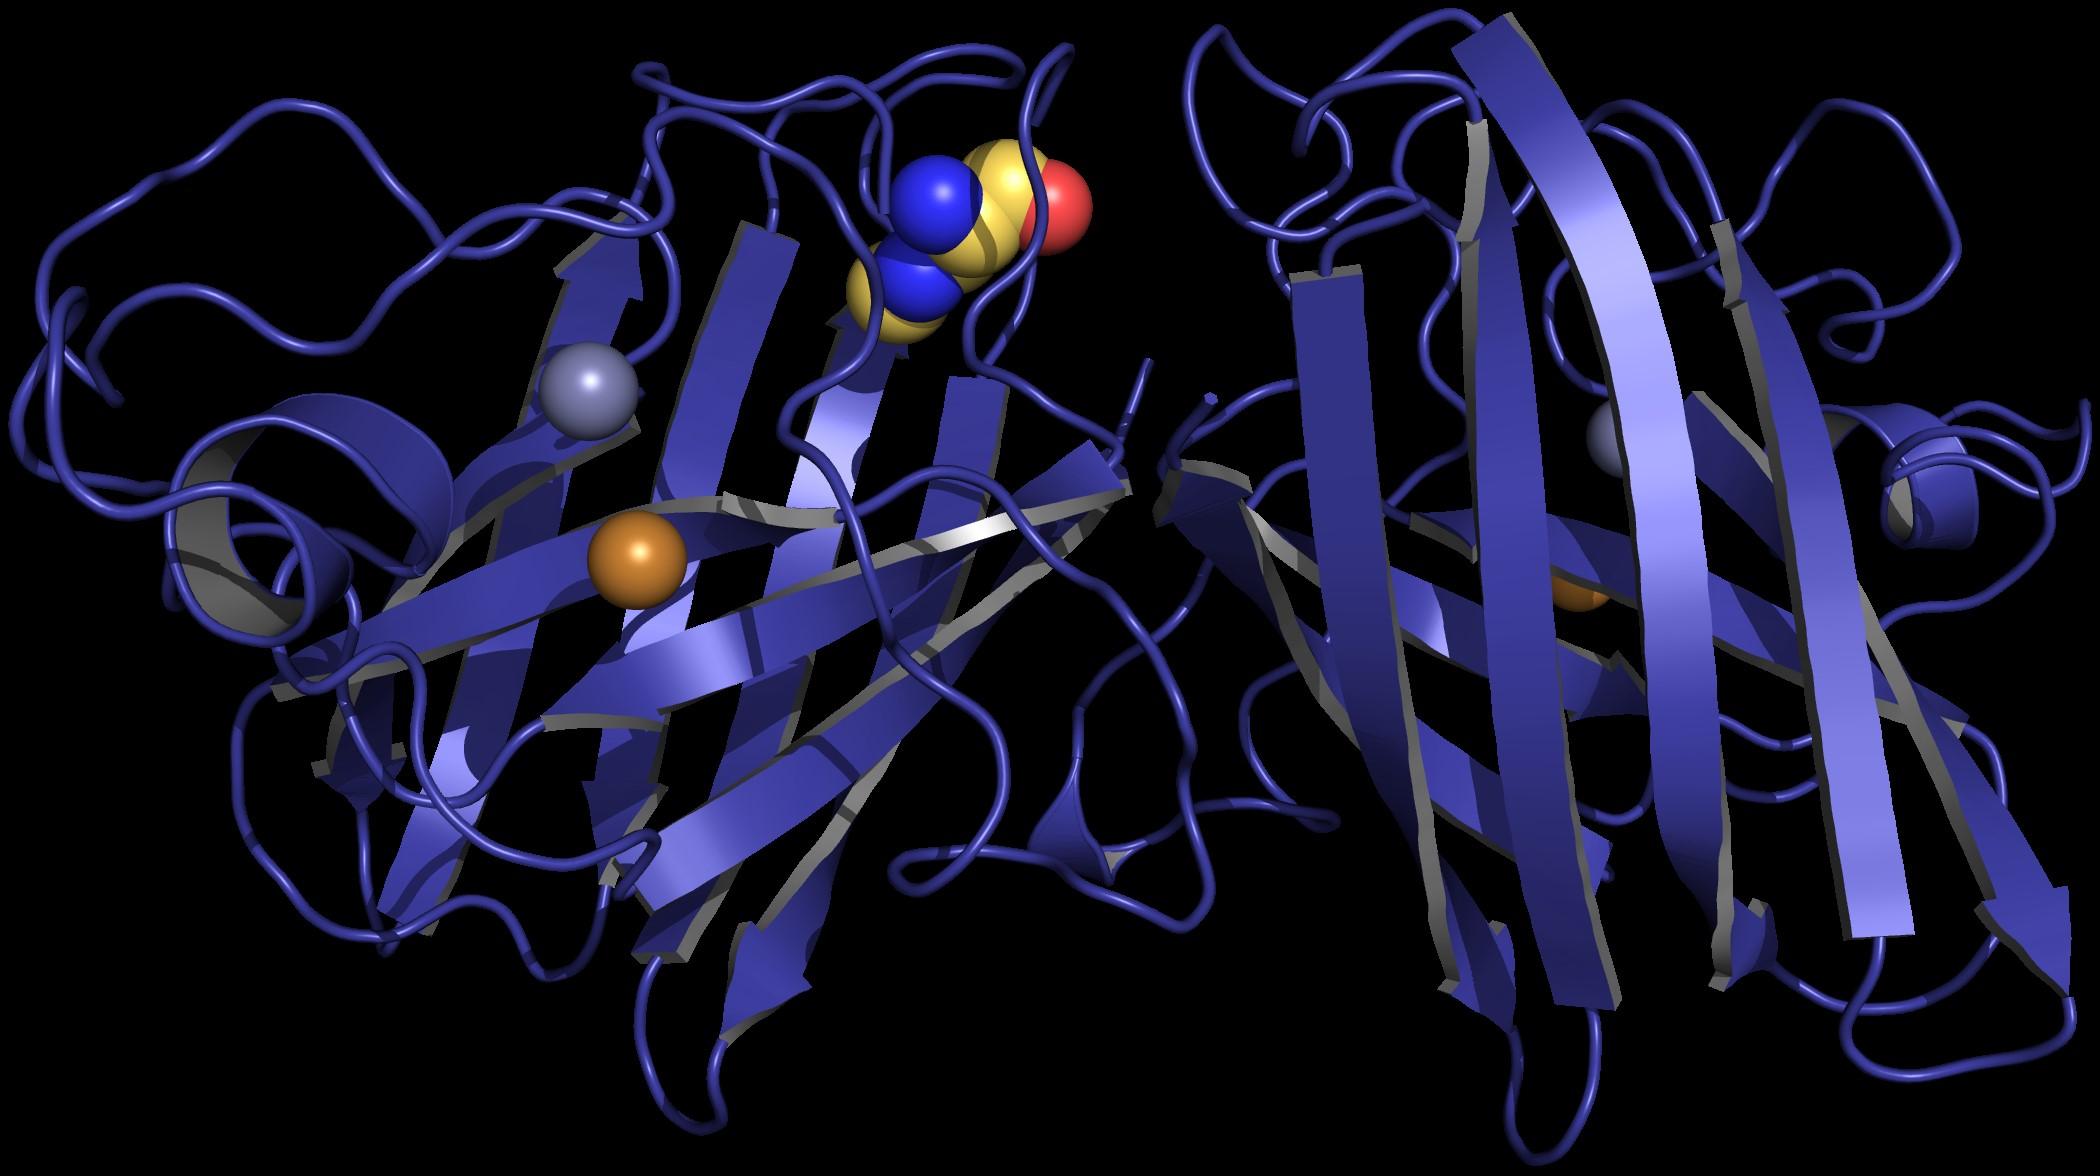 A computer-generated model of a protein